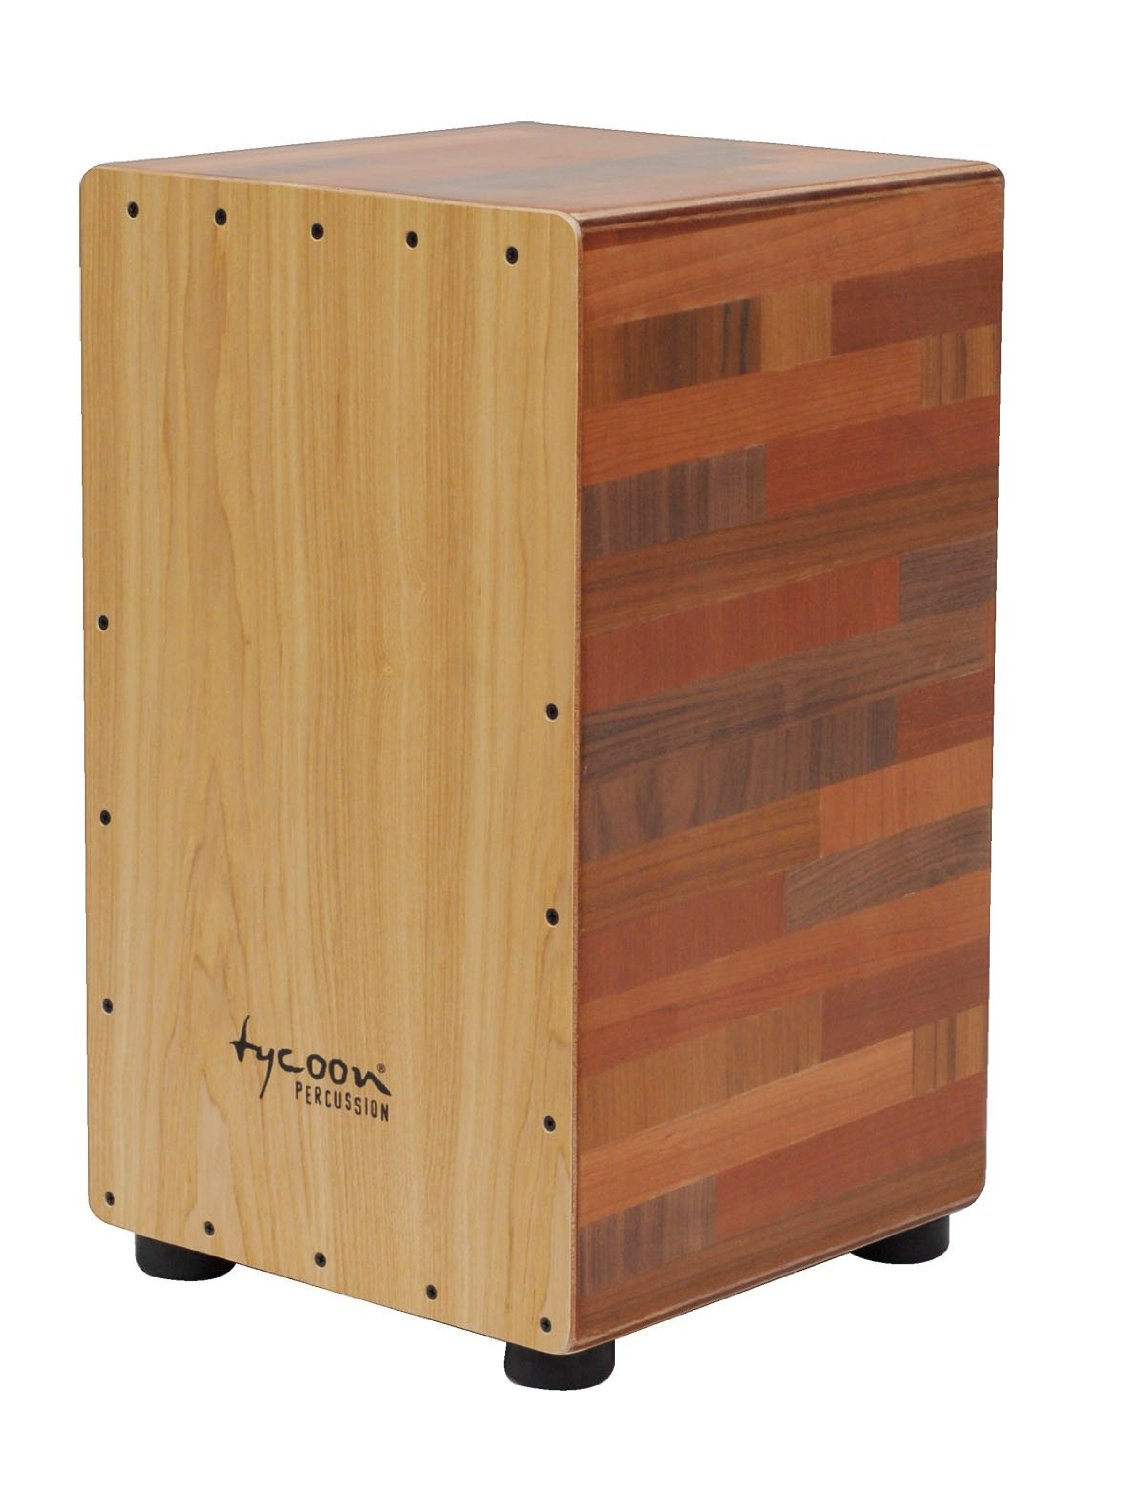 Tycoon Percussion TKT-29 Cajon